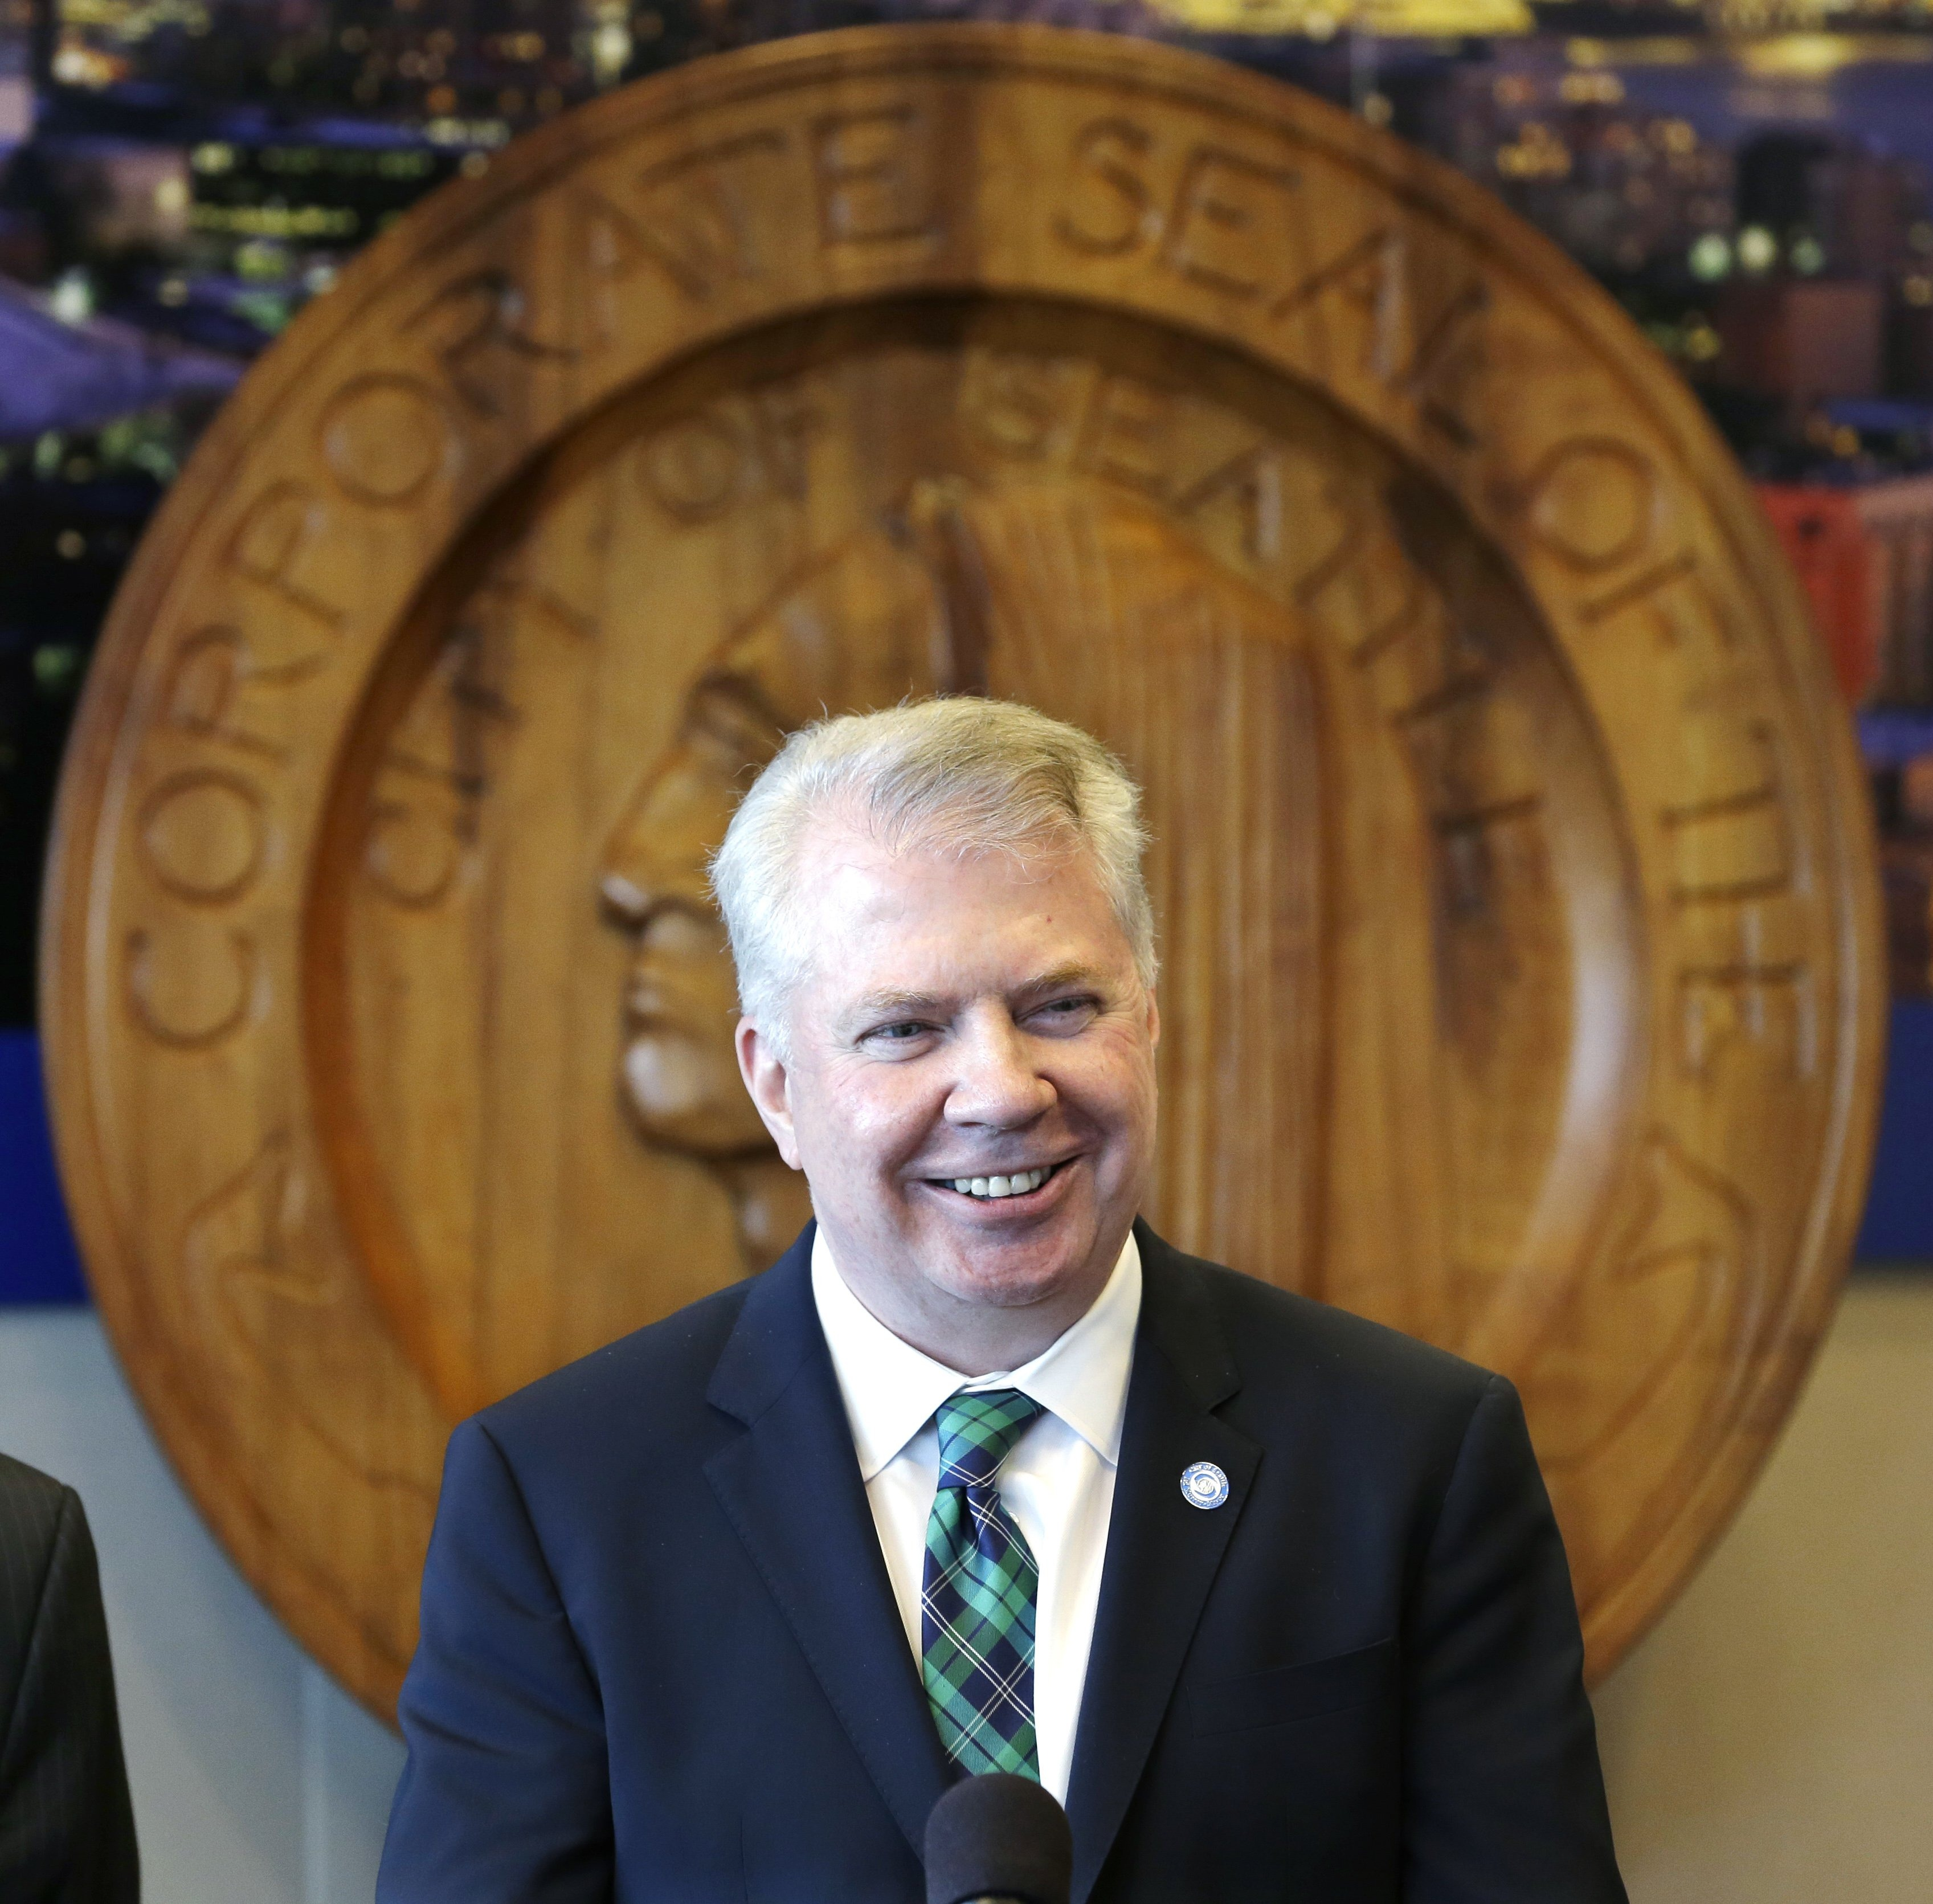 Seattle Mayor Ed Murray smiles as he addresses a news conference on a proposal to increase the minimum wage in the city Thursday, April 24, 2014, in Seattle.